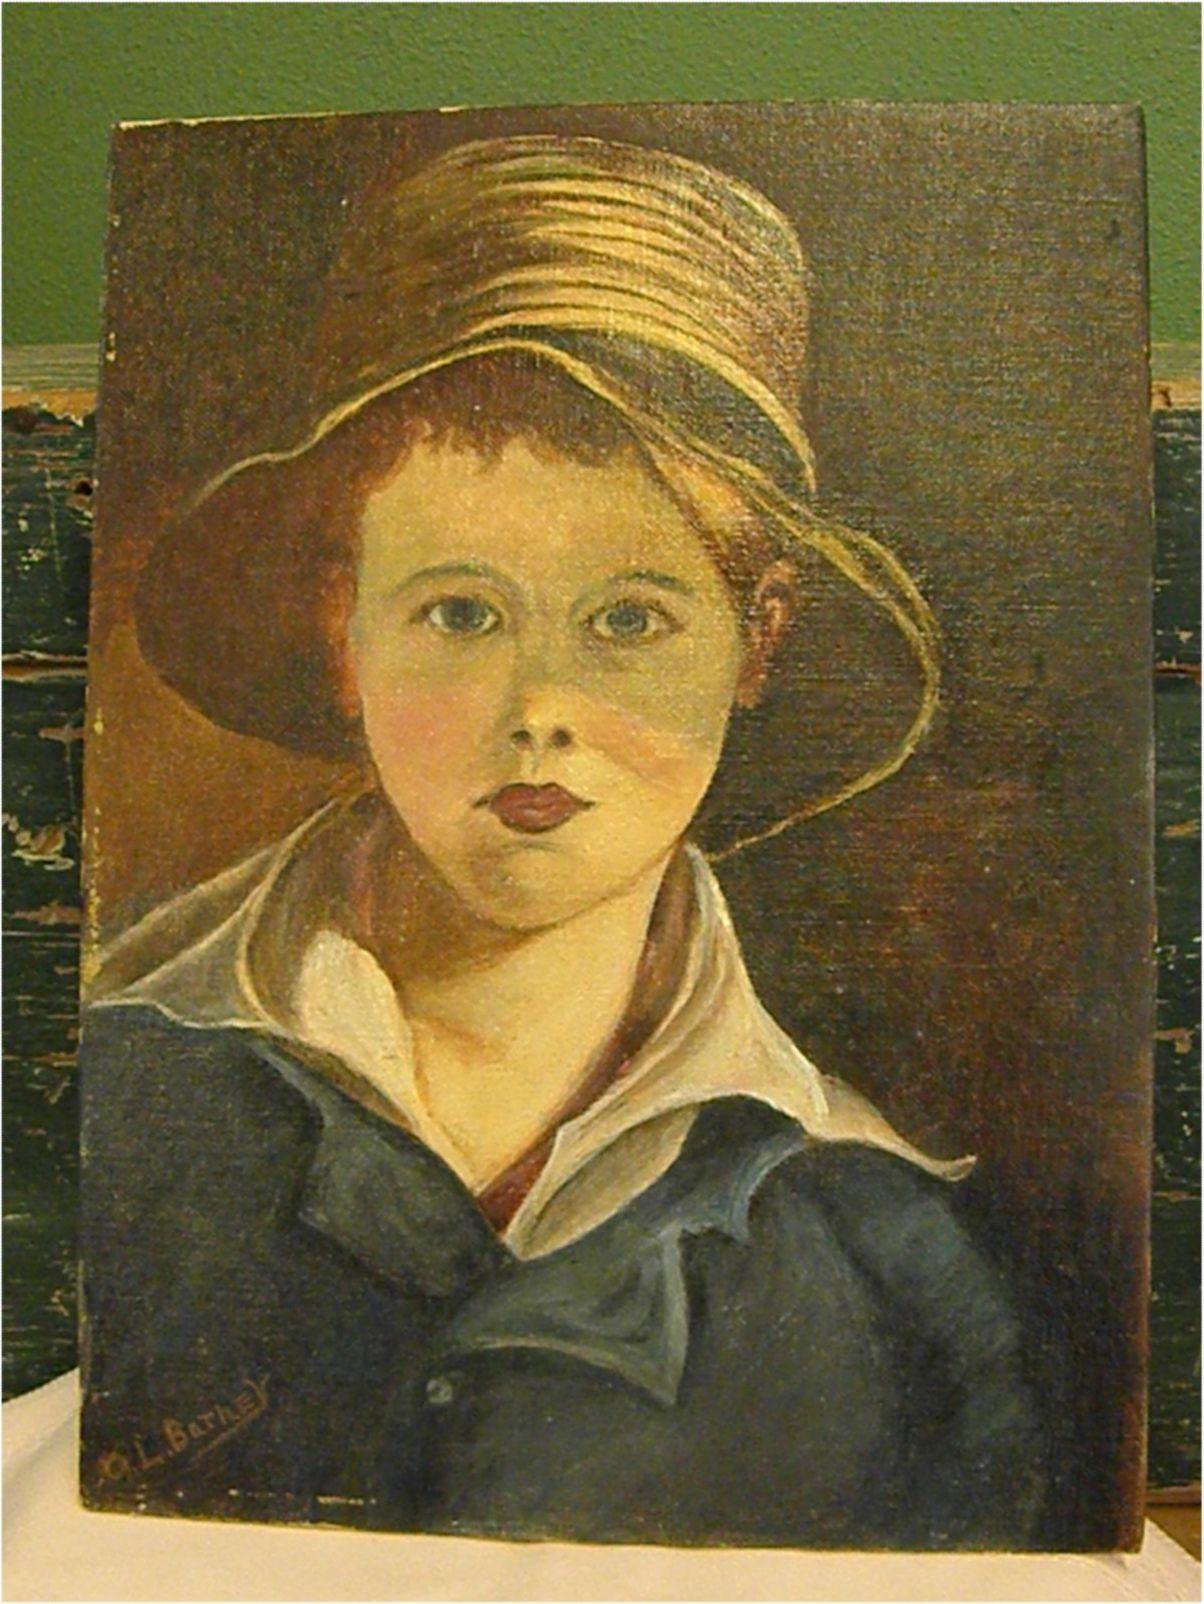 Vintage Mid-Century M. Manson Young Boy Wearing a Ruff